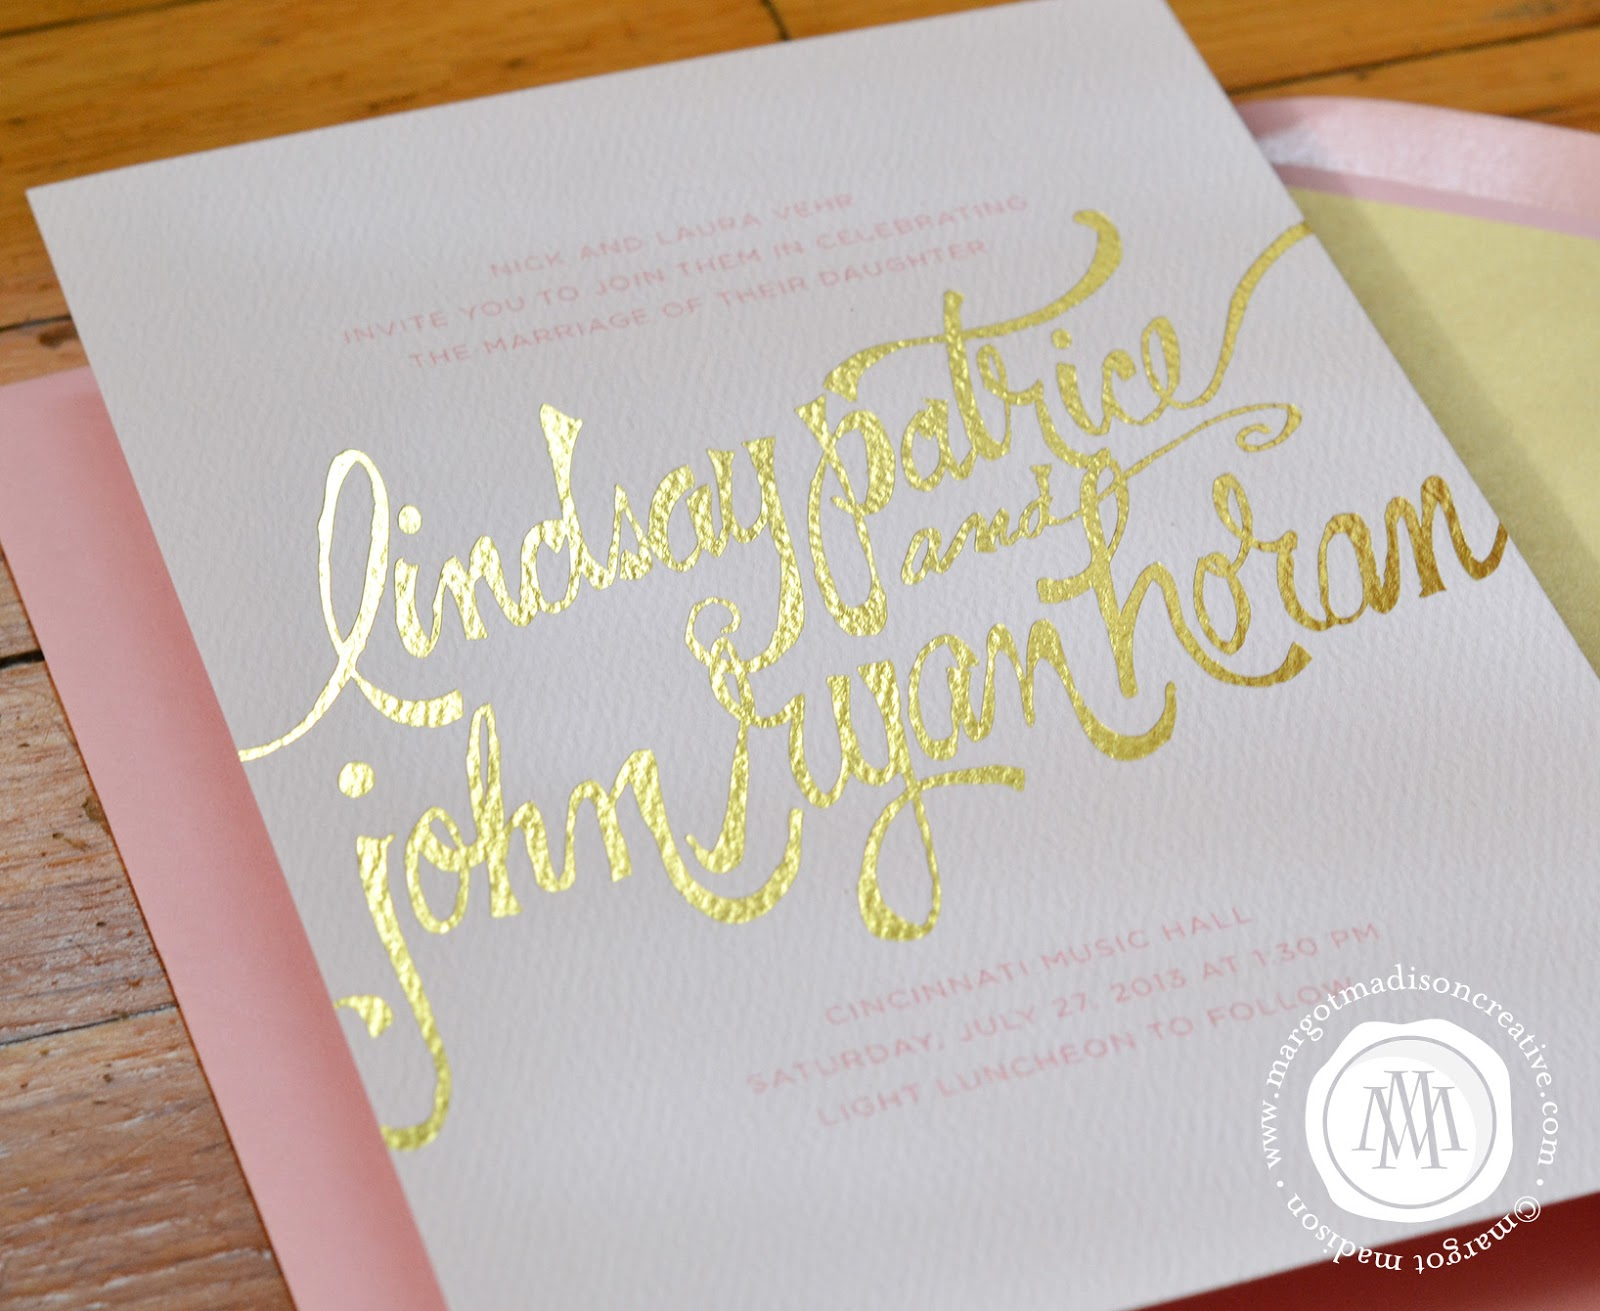 Margotmadison Handwritten Fonts On Wedding Invitations